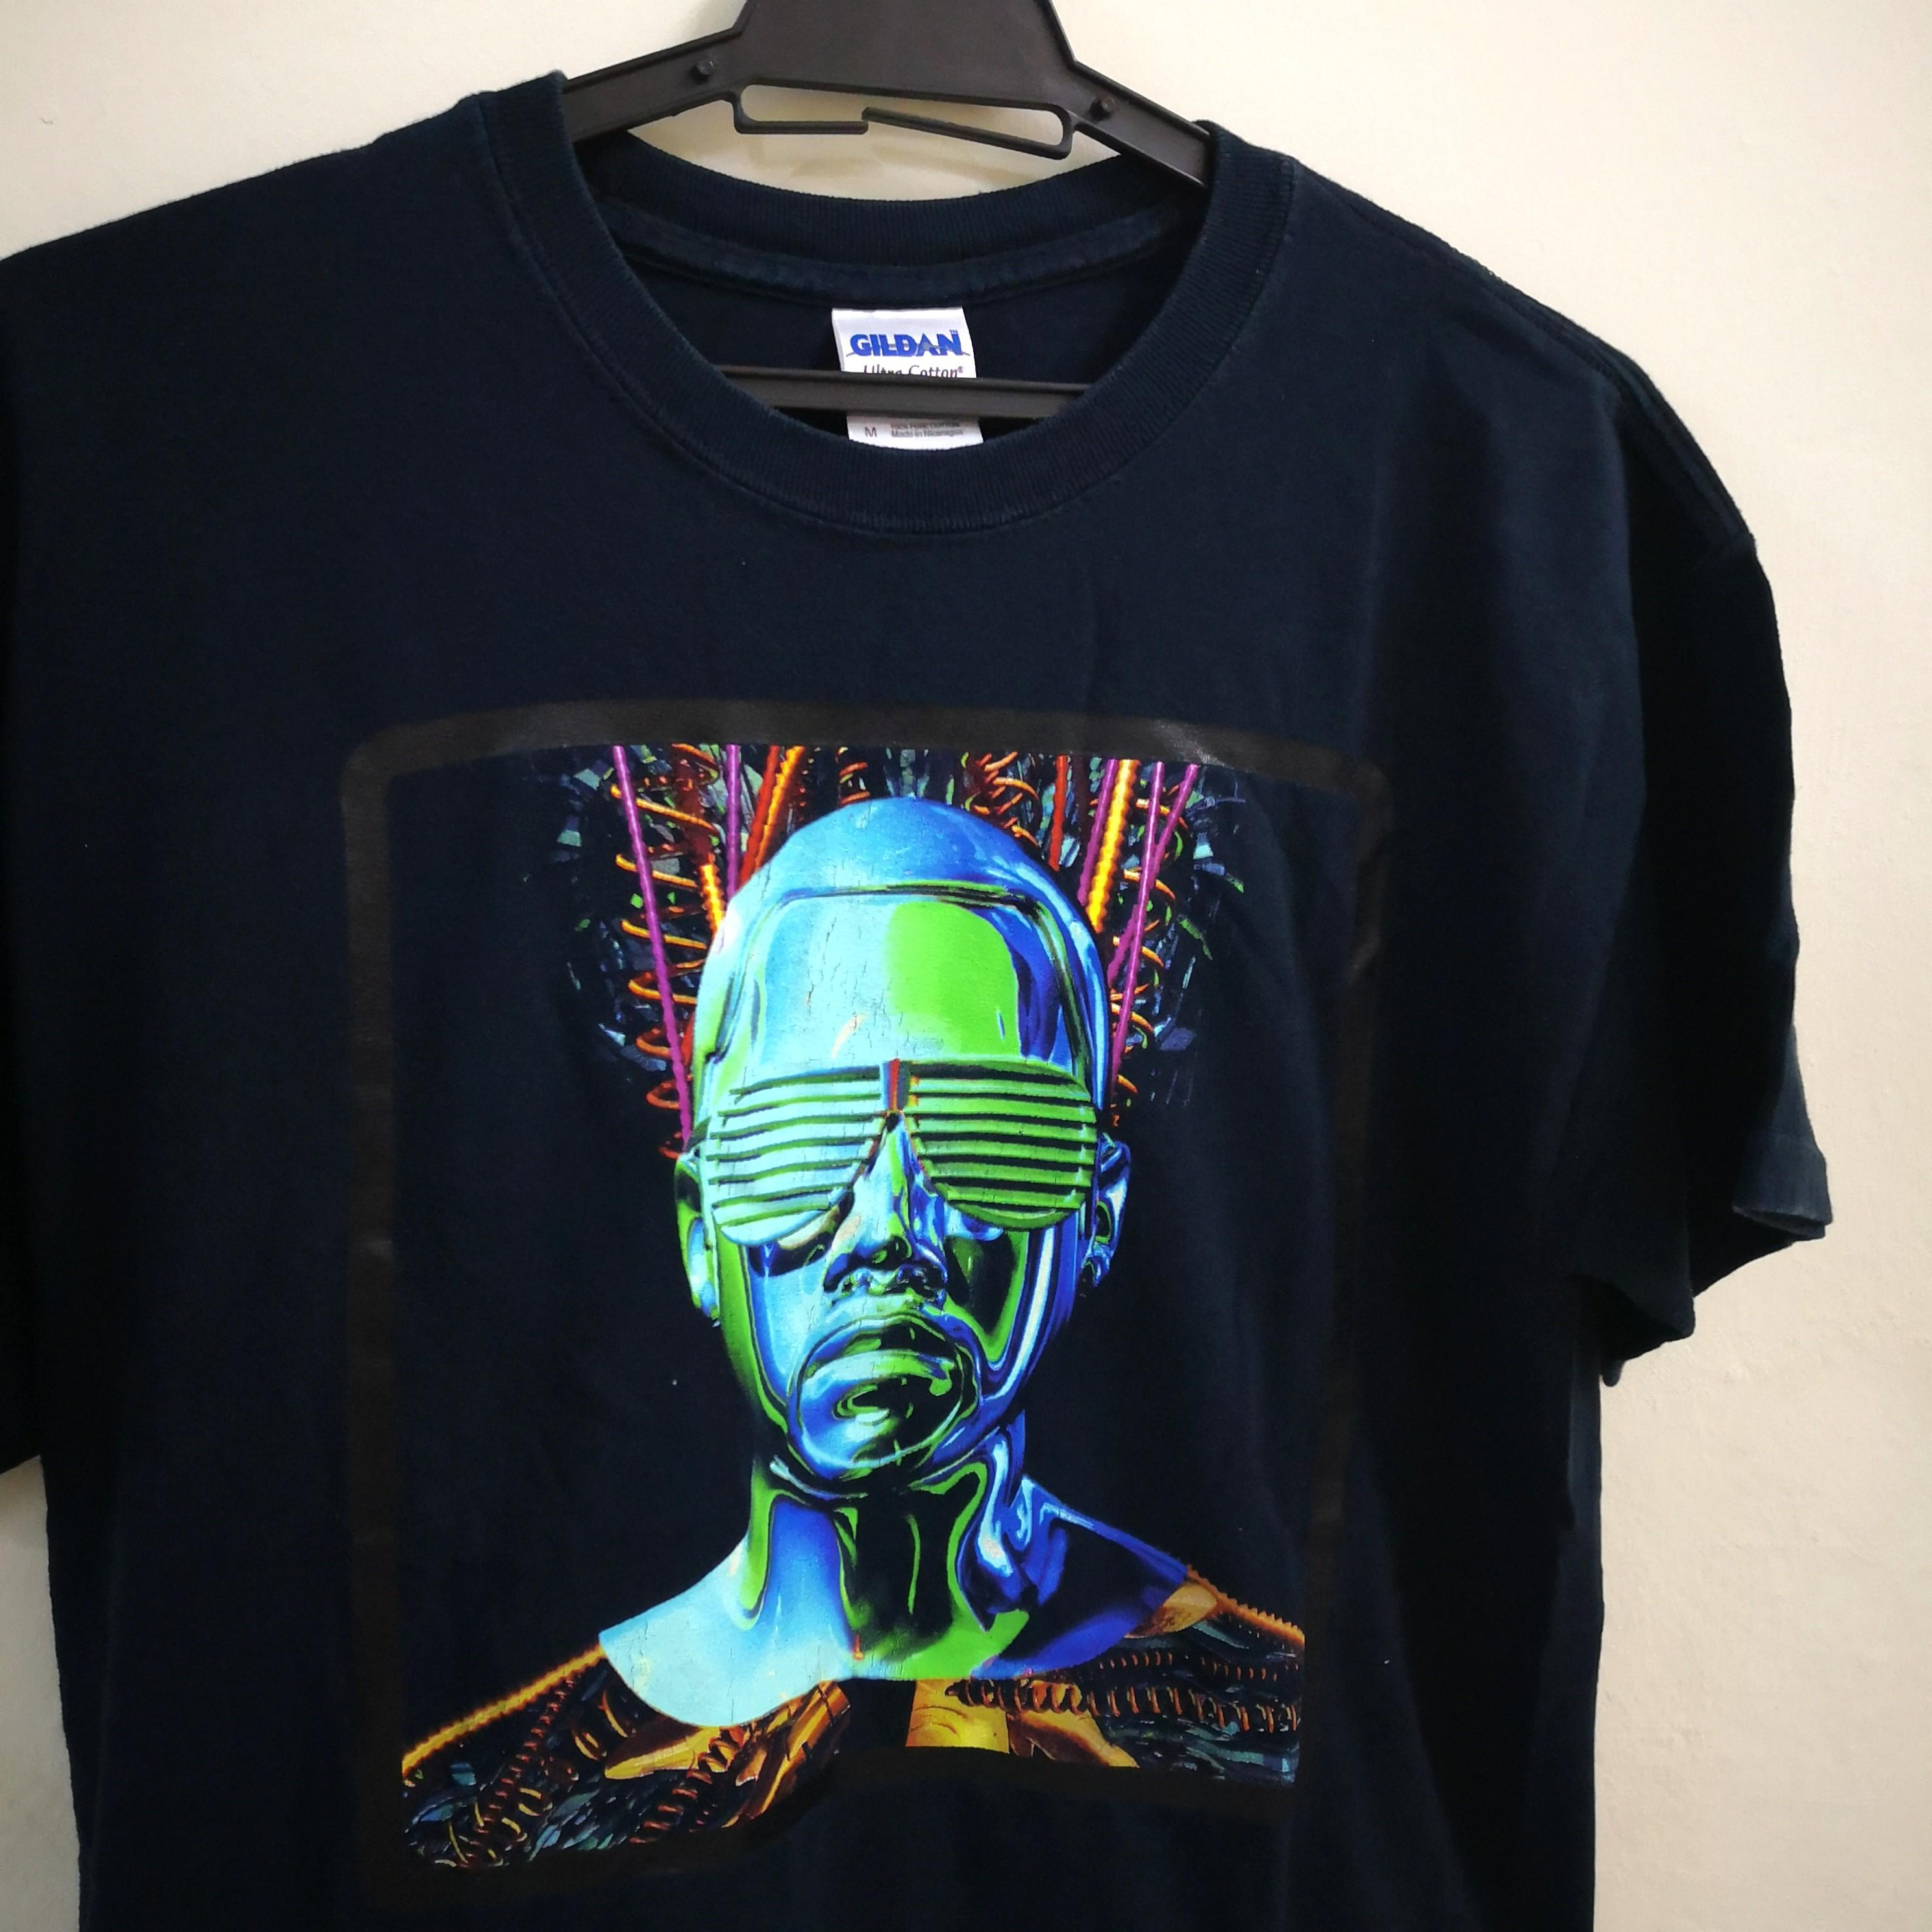 Kanye West Glow In The Dark Tour T Shirt